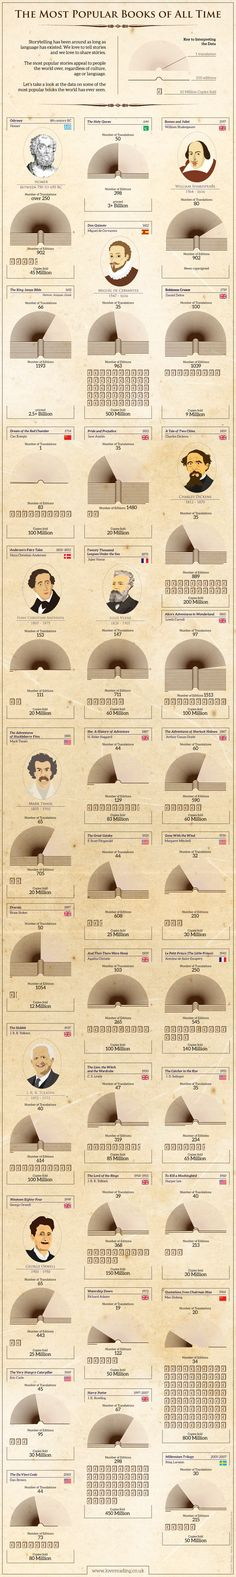 Los libros más polulares - Infografía / The most polular books of all time - Infographic